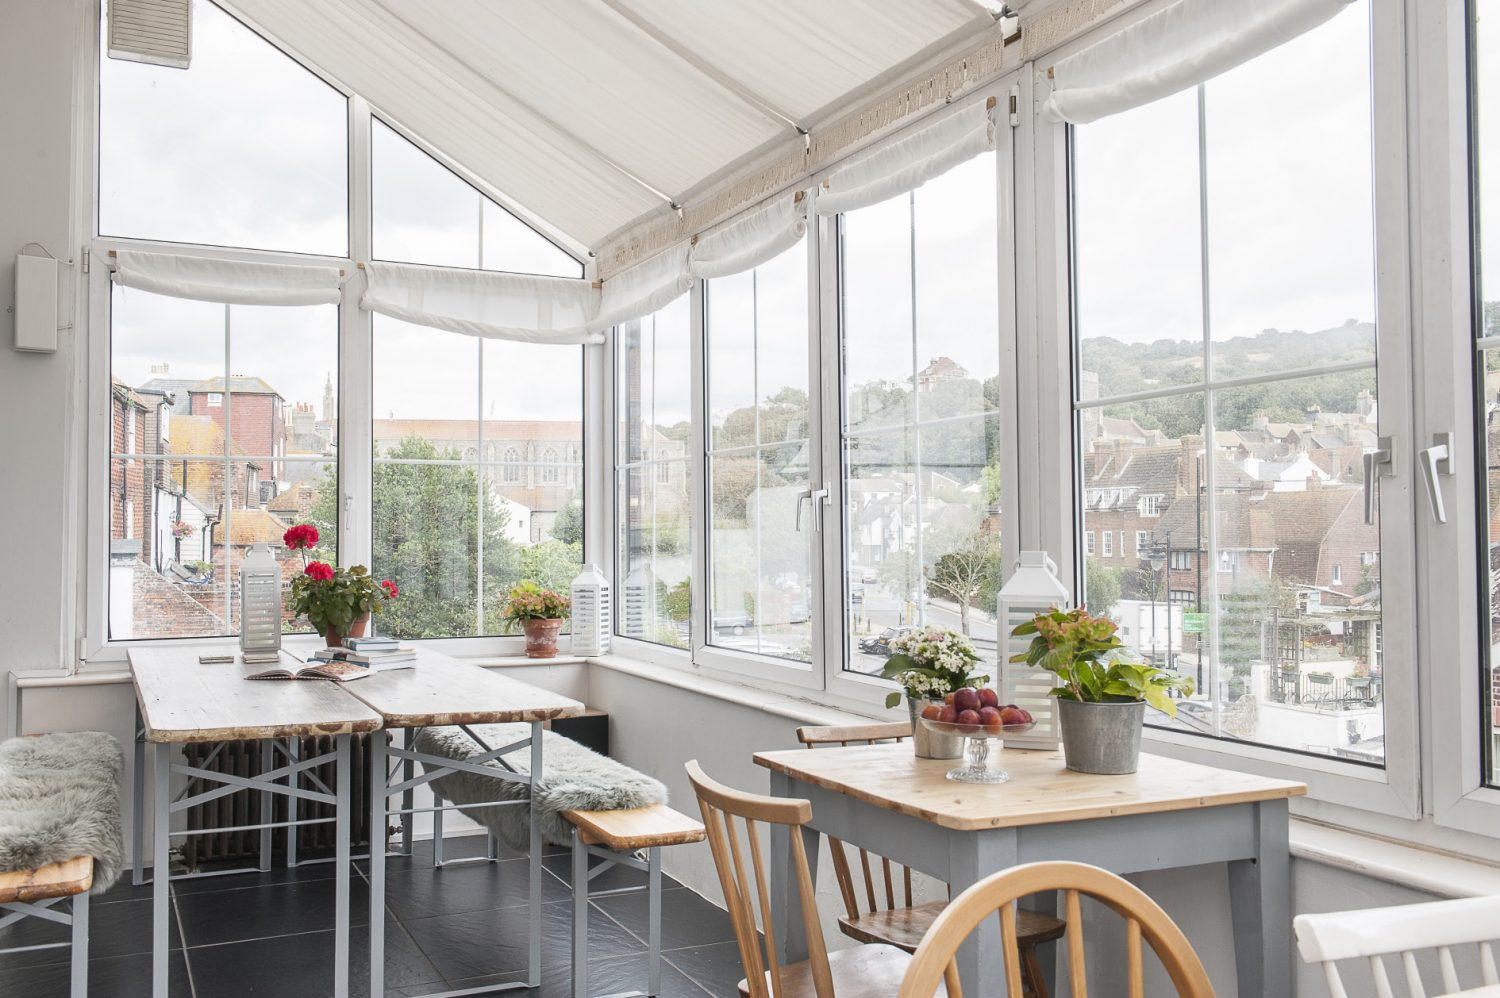 Two steel-framed trestle tables and benches draped with sheepskins provide cosy seating in the breakfast room